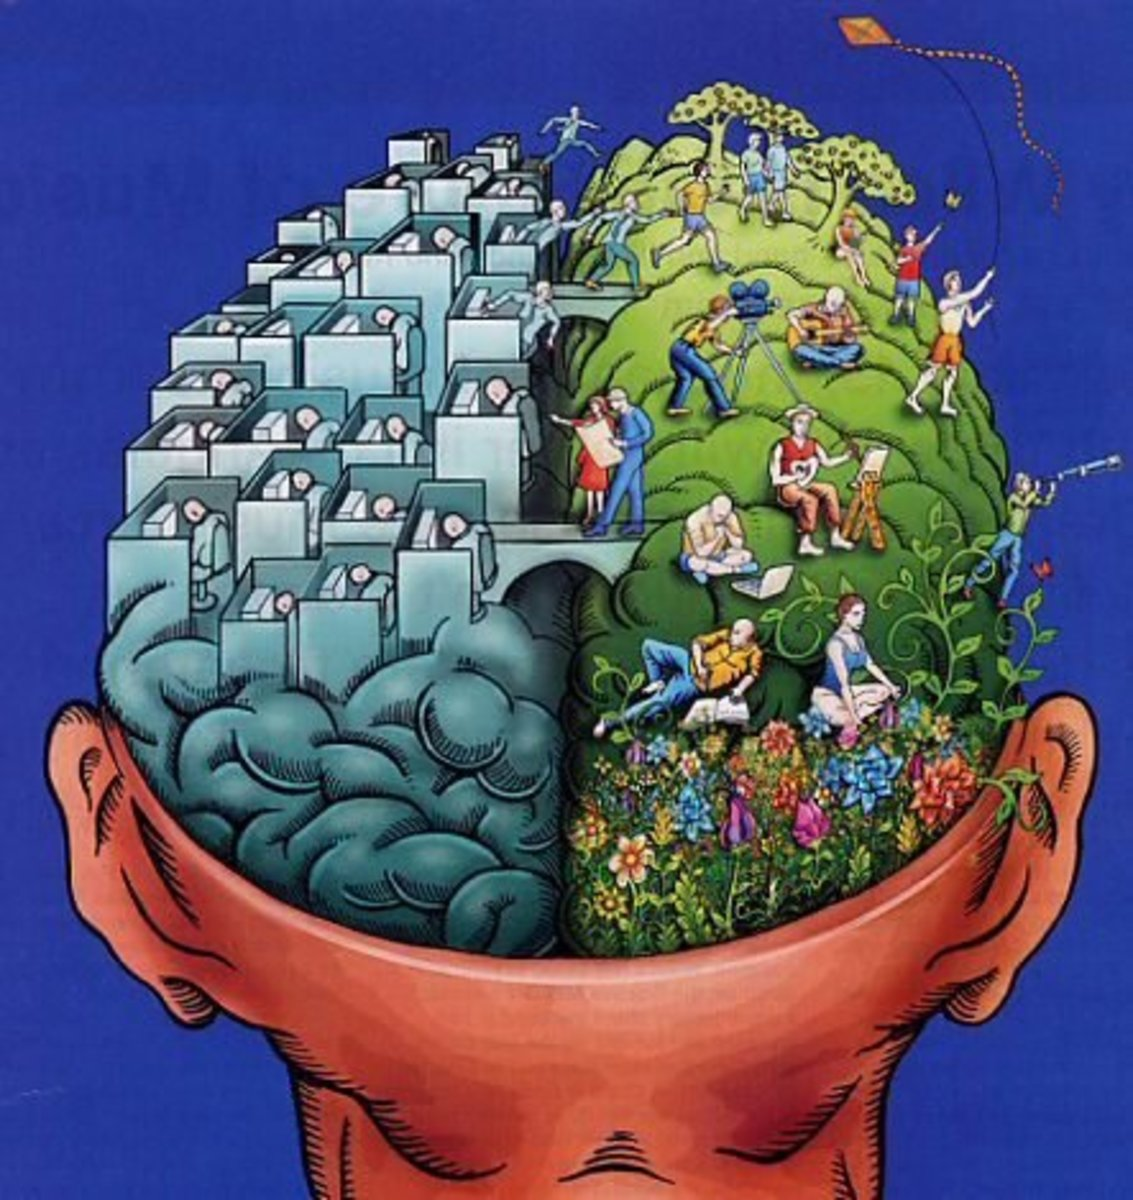 Distinction of brain and mind.